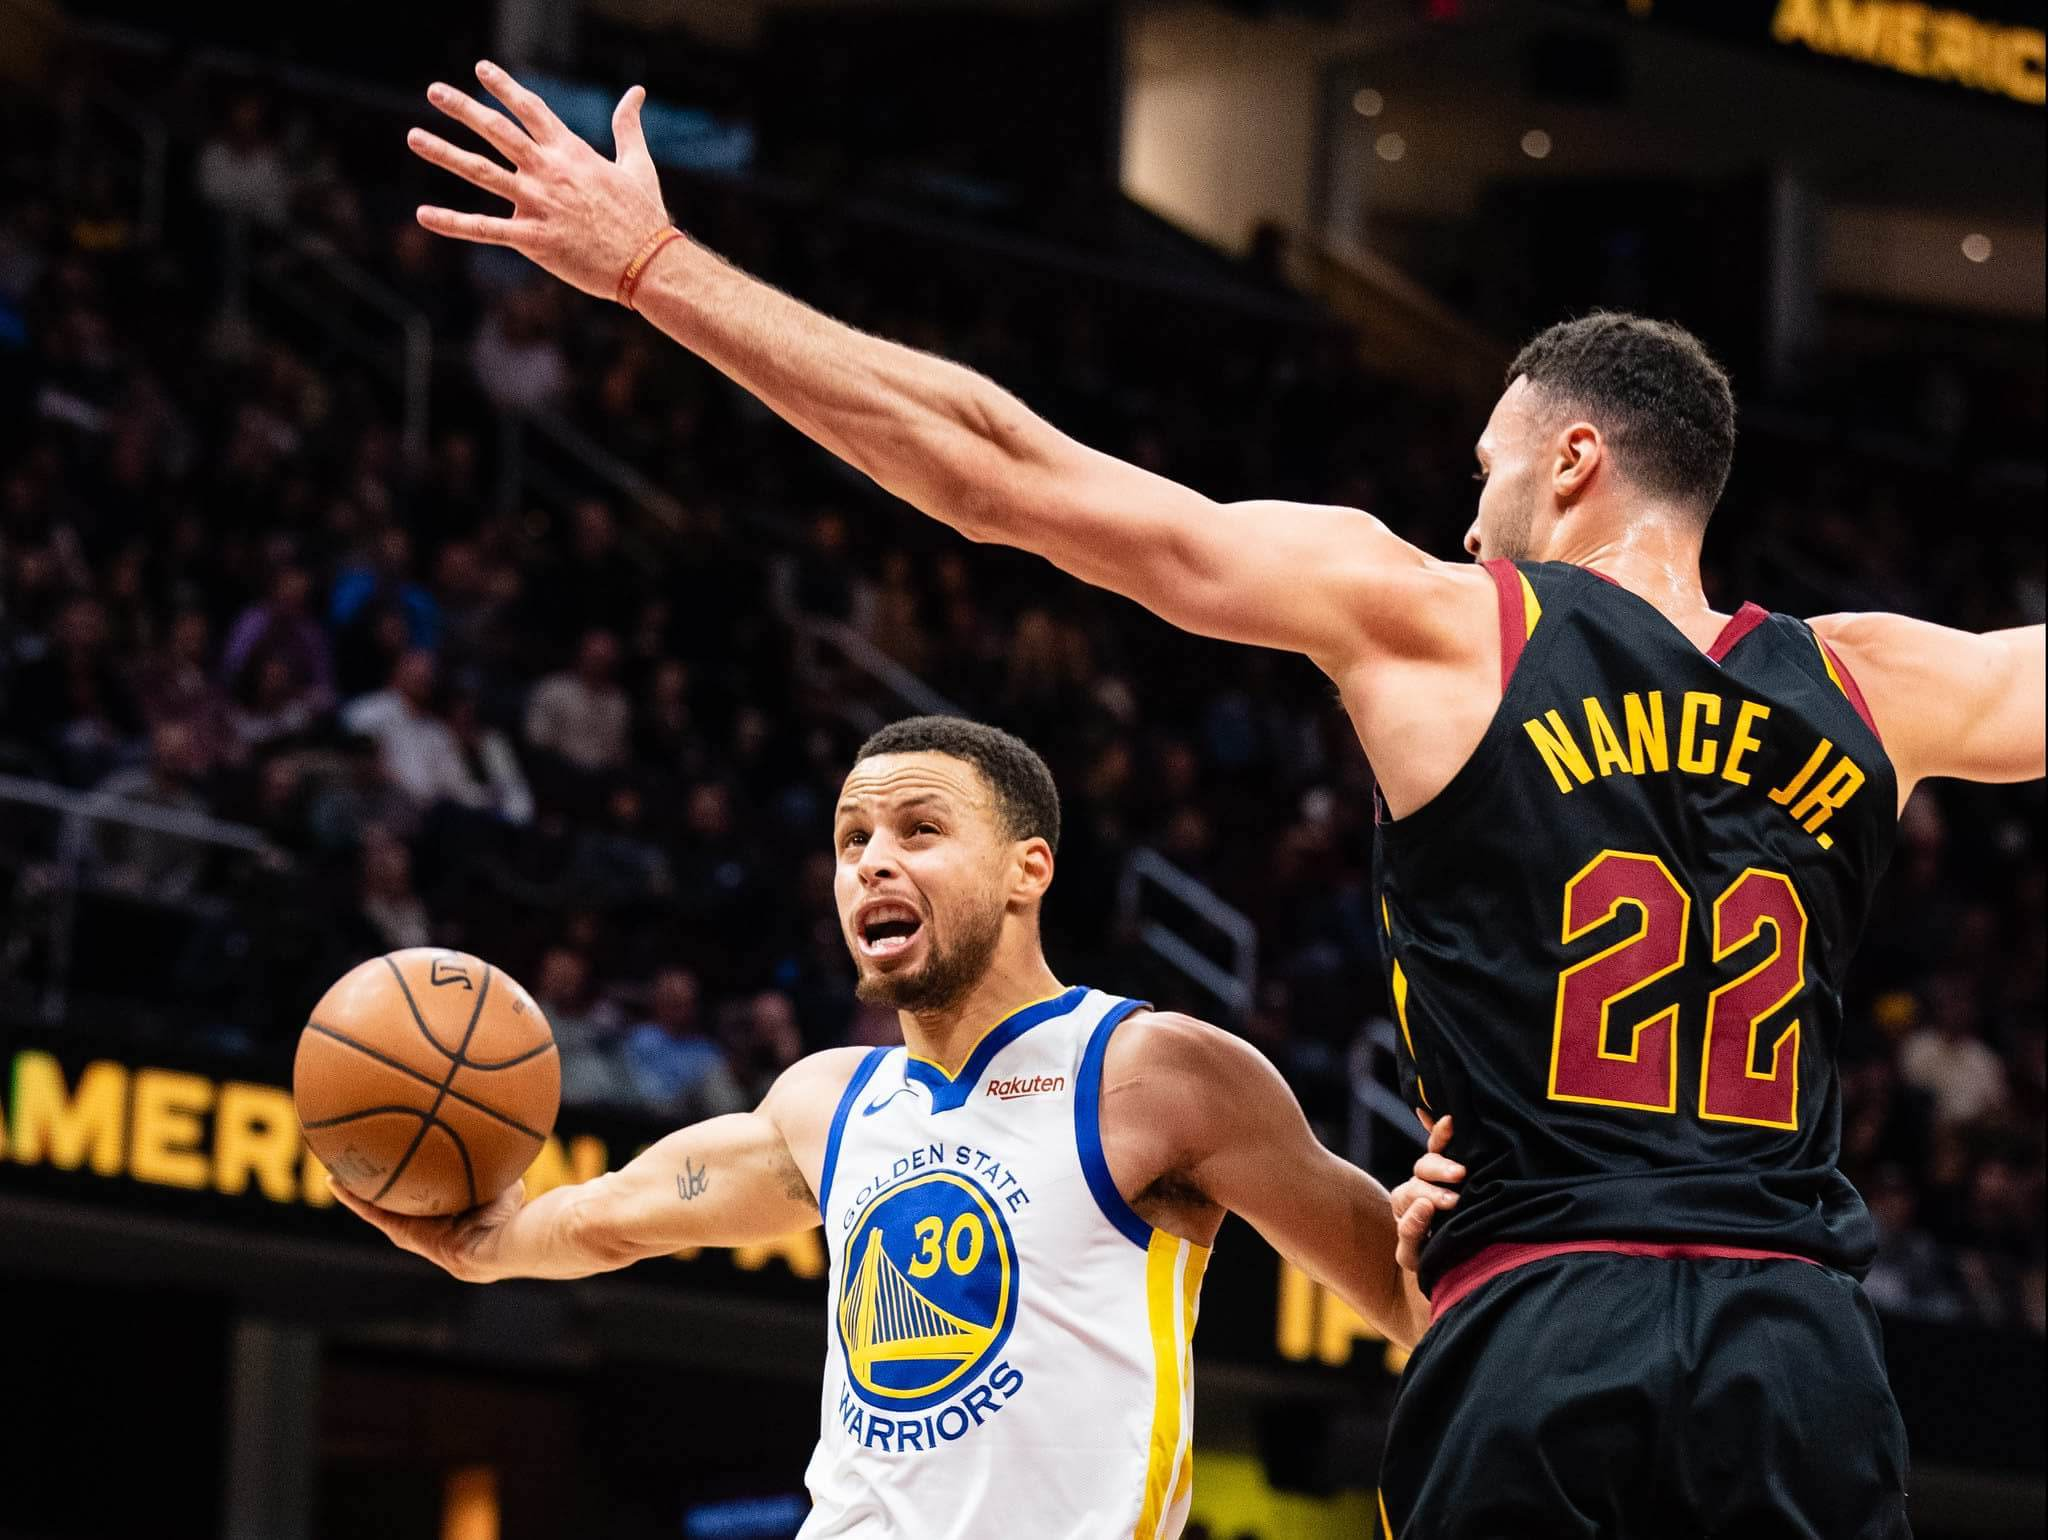 Golden State Warriors vs Cleveland Cavaliers NBA basketball rivalry